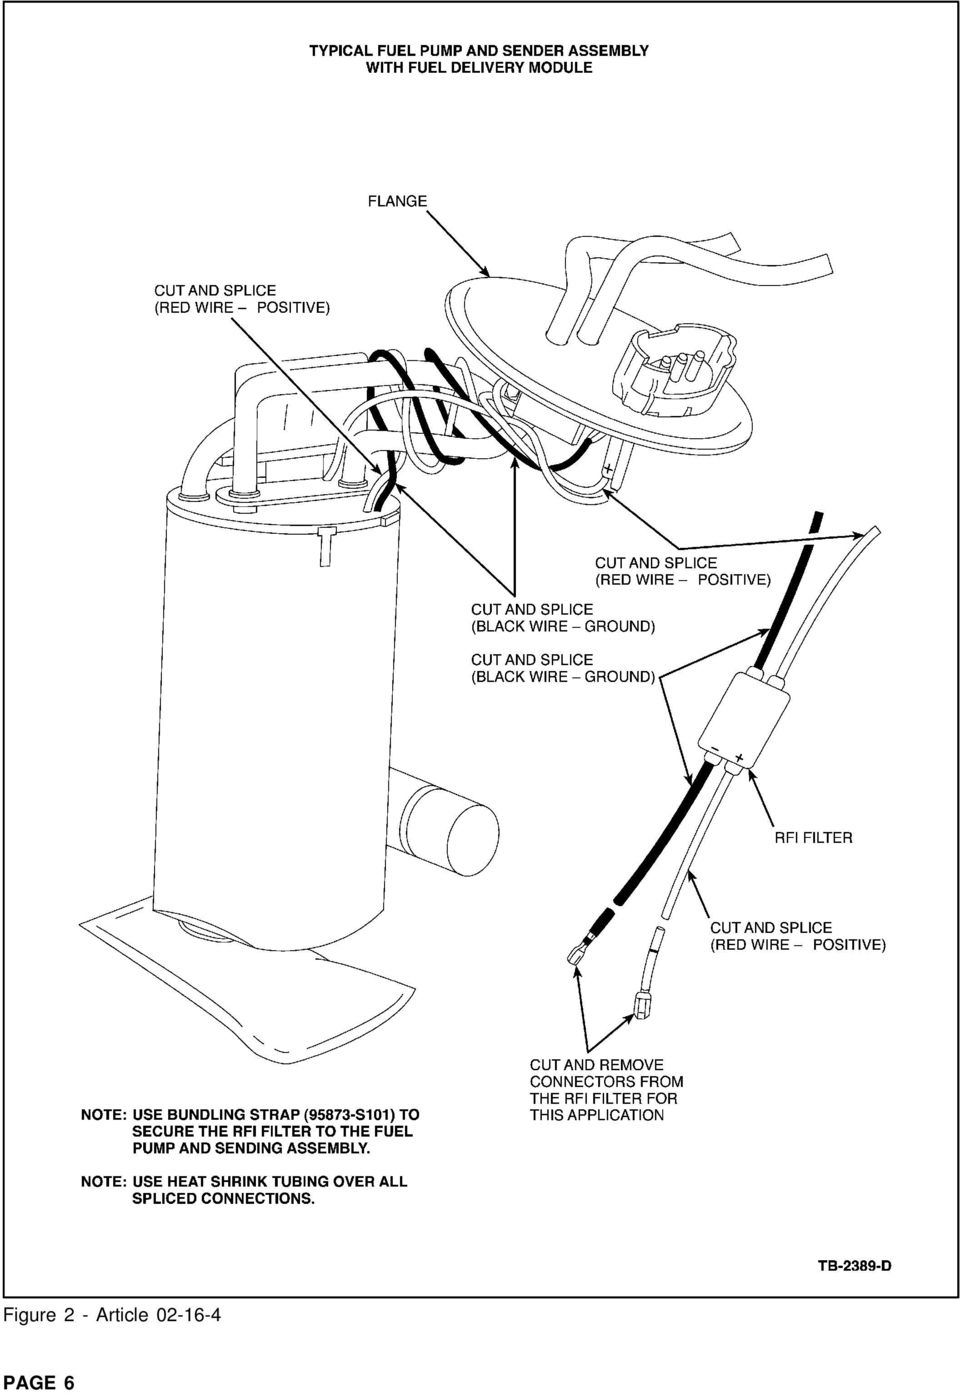 copyright 2002 ford motor pany page 1 pdf Vehicle 6 Volt Positive Ground Wiring Diagram 02 16 4